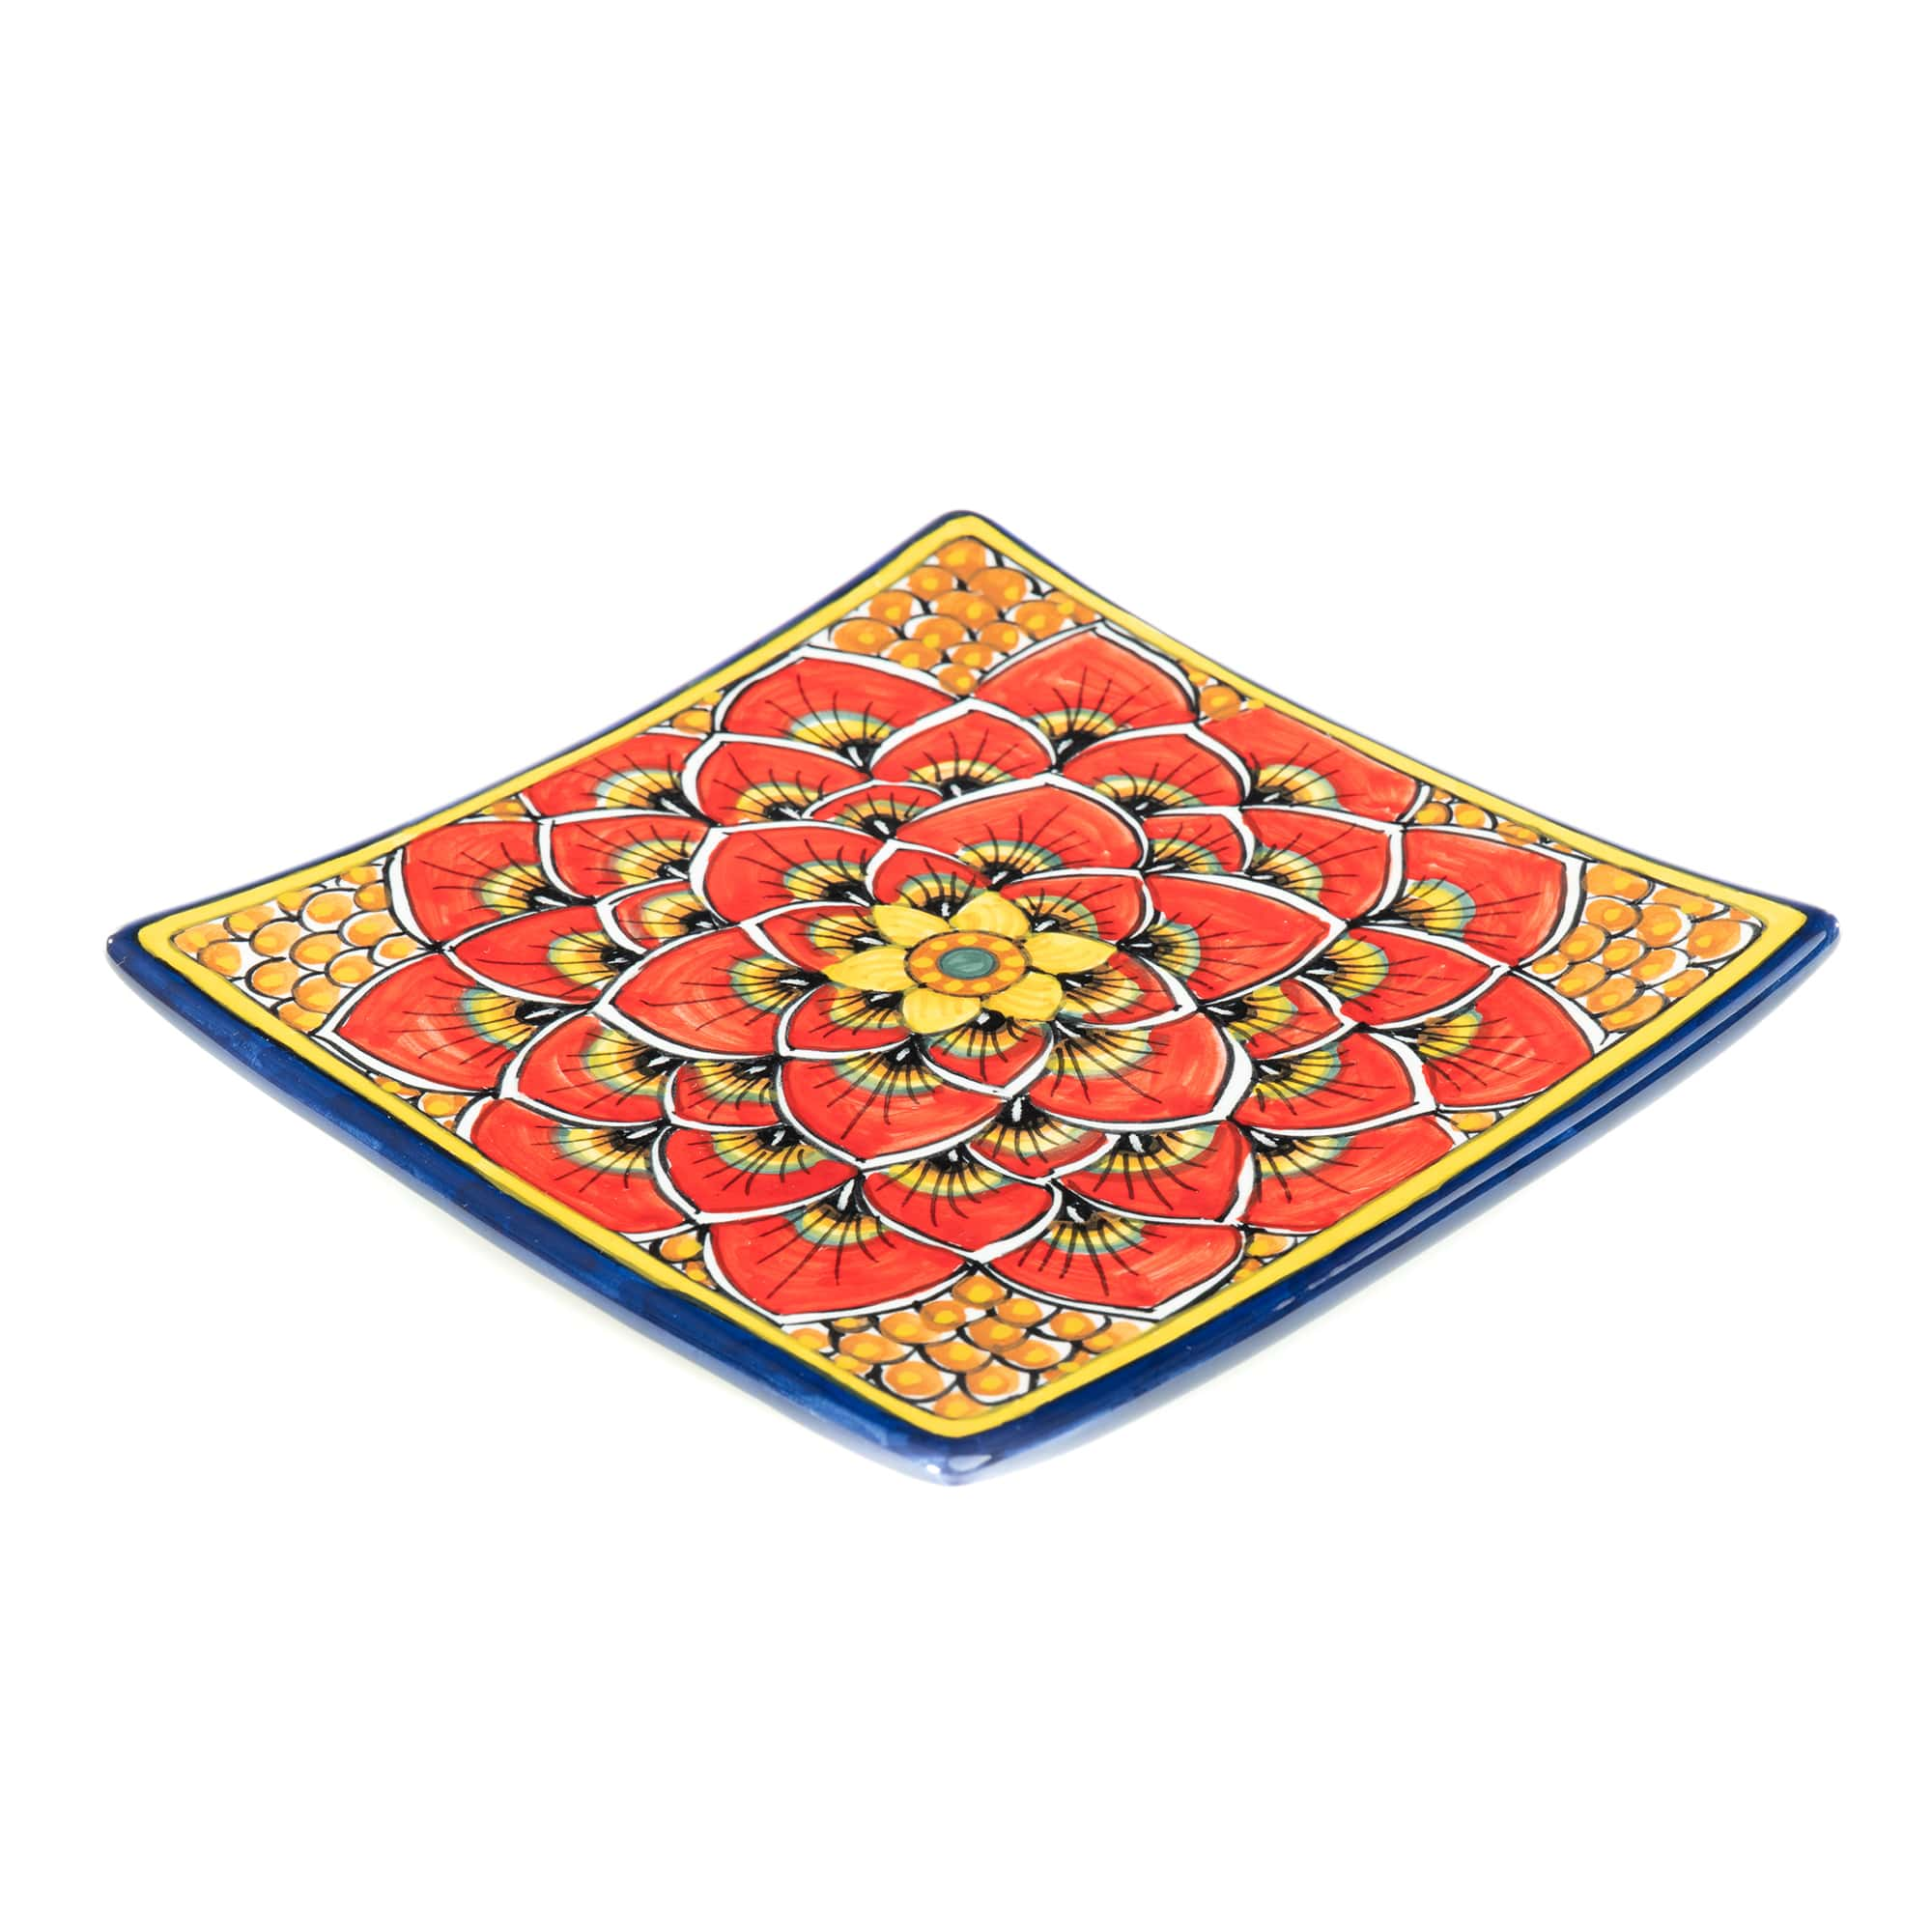 Geribi Square Sushi Plate (PG04) Red Peacock Design